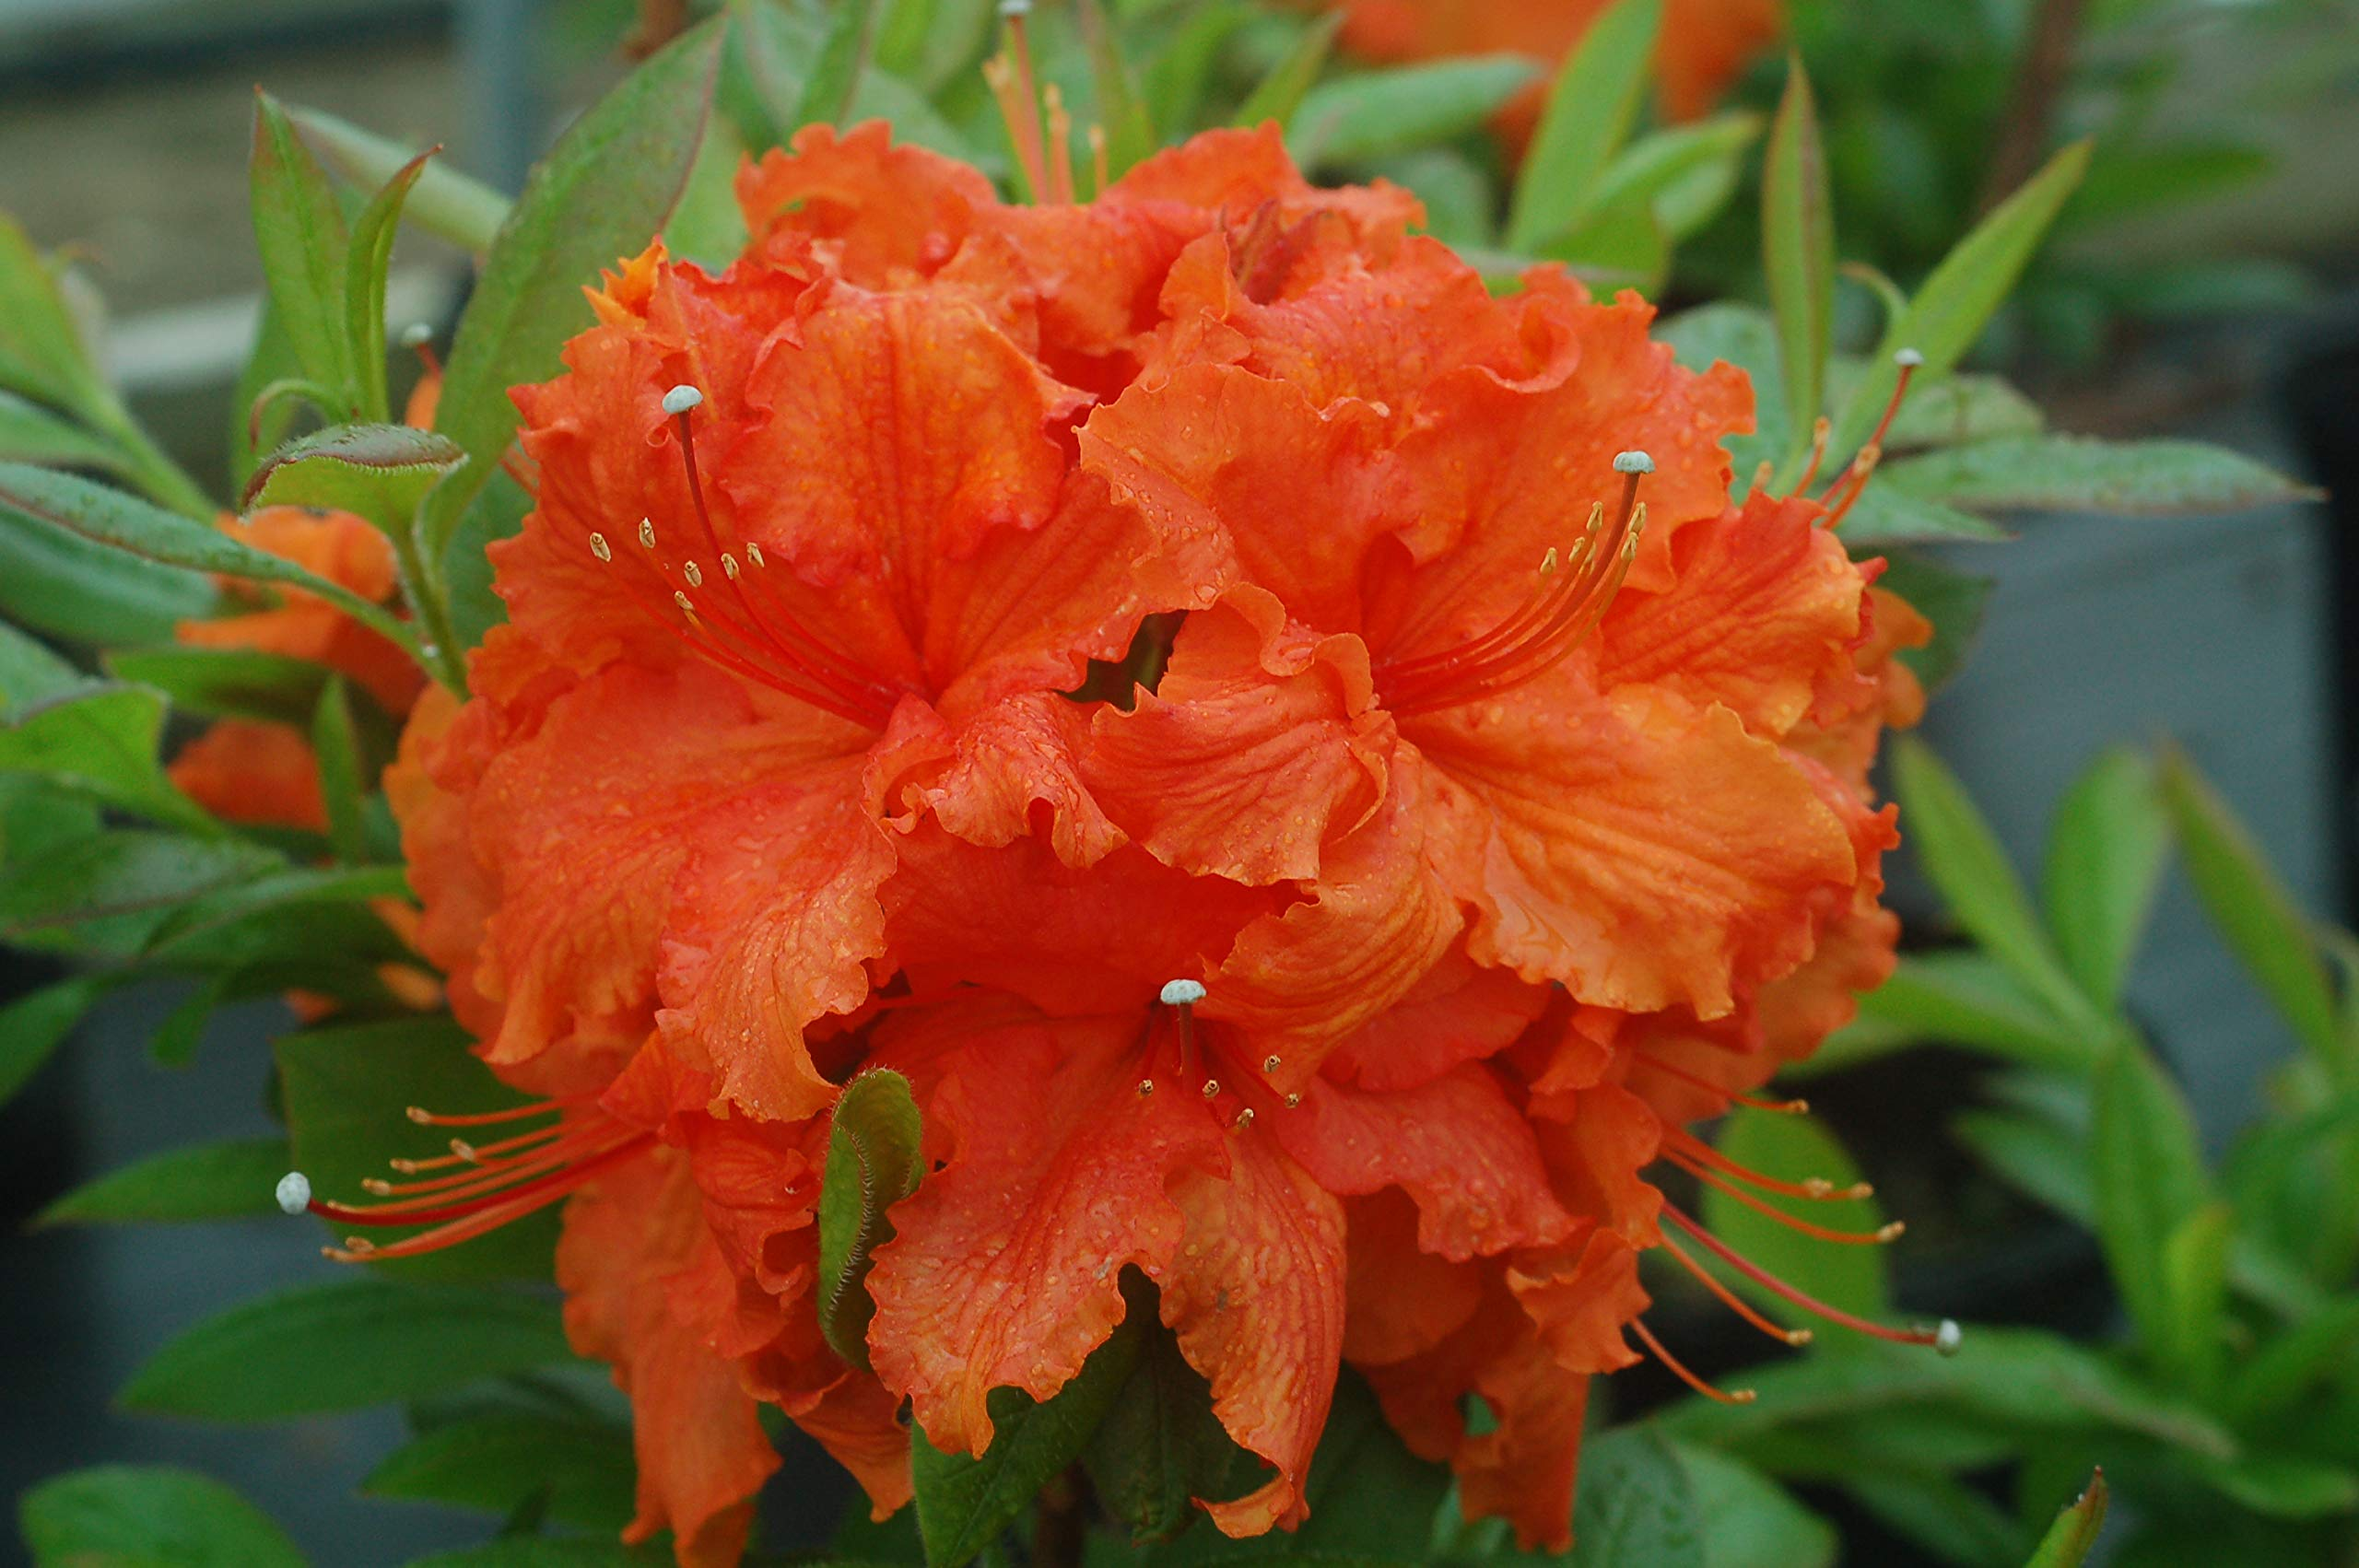 Azalea 'Gibraltar' (Exbury Azalea) Shrub, orange flowers, #2 - Size Container